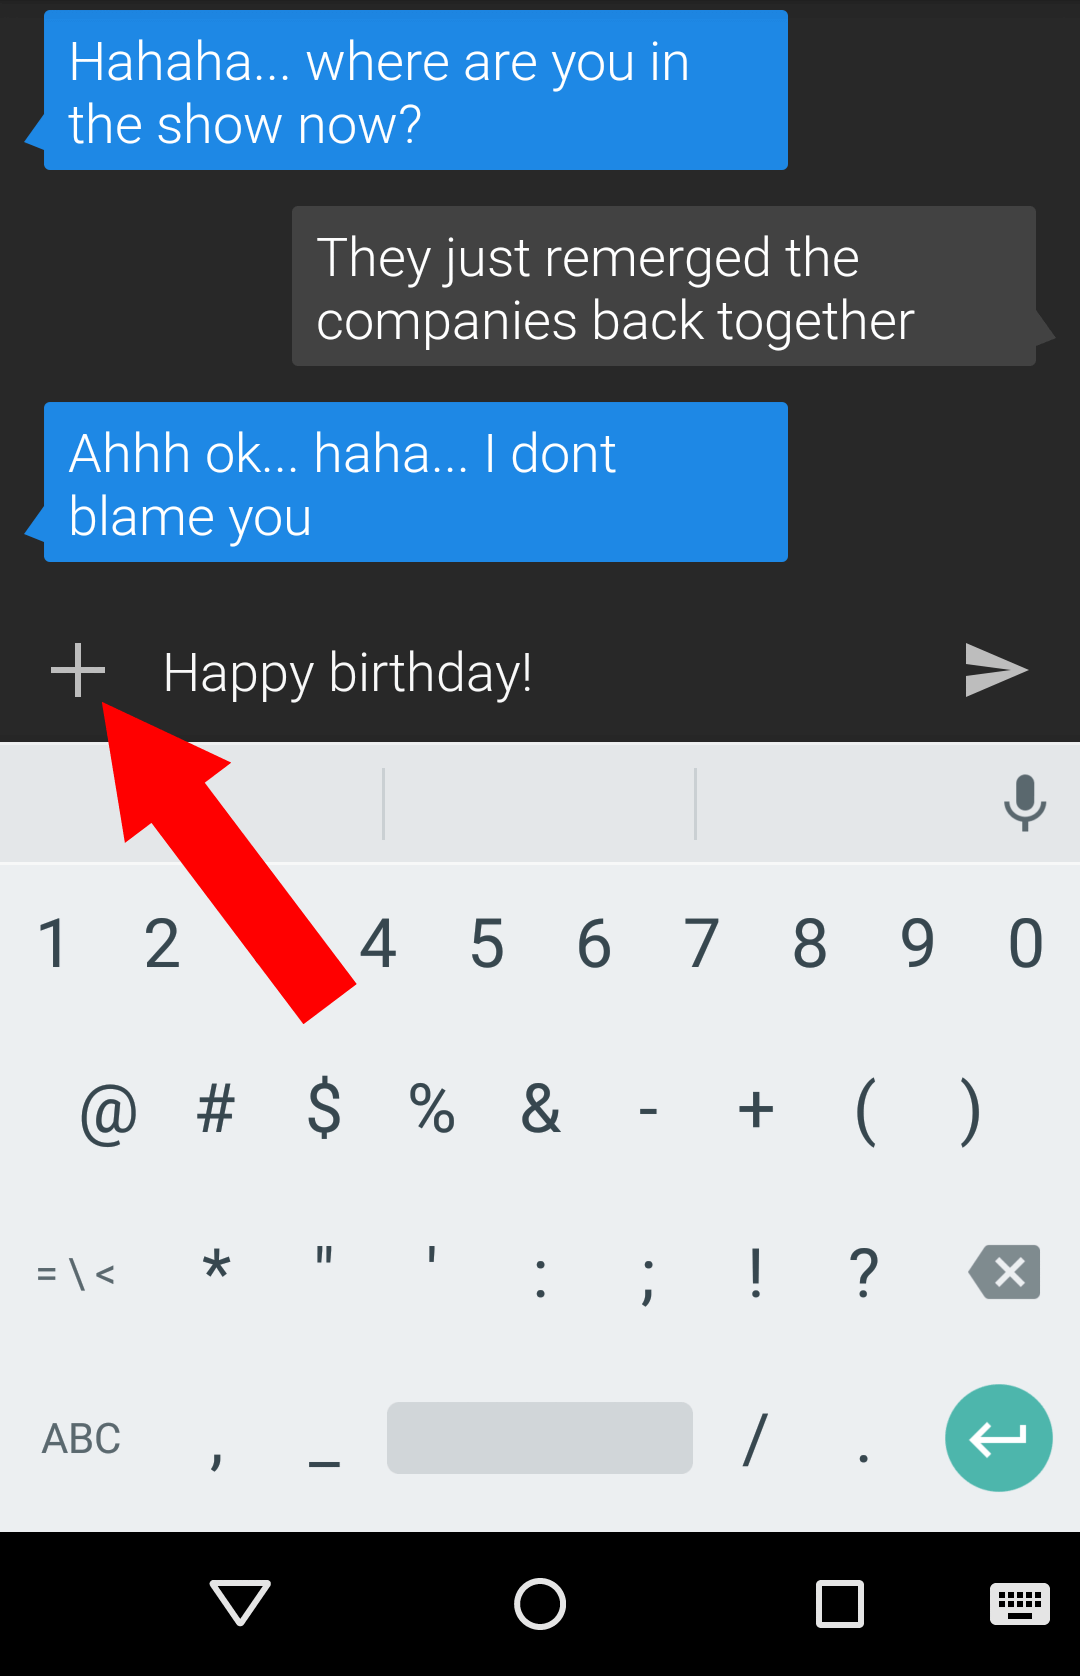 Scheduling texts works great for birthdays.